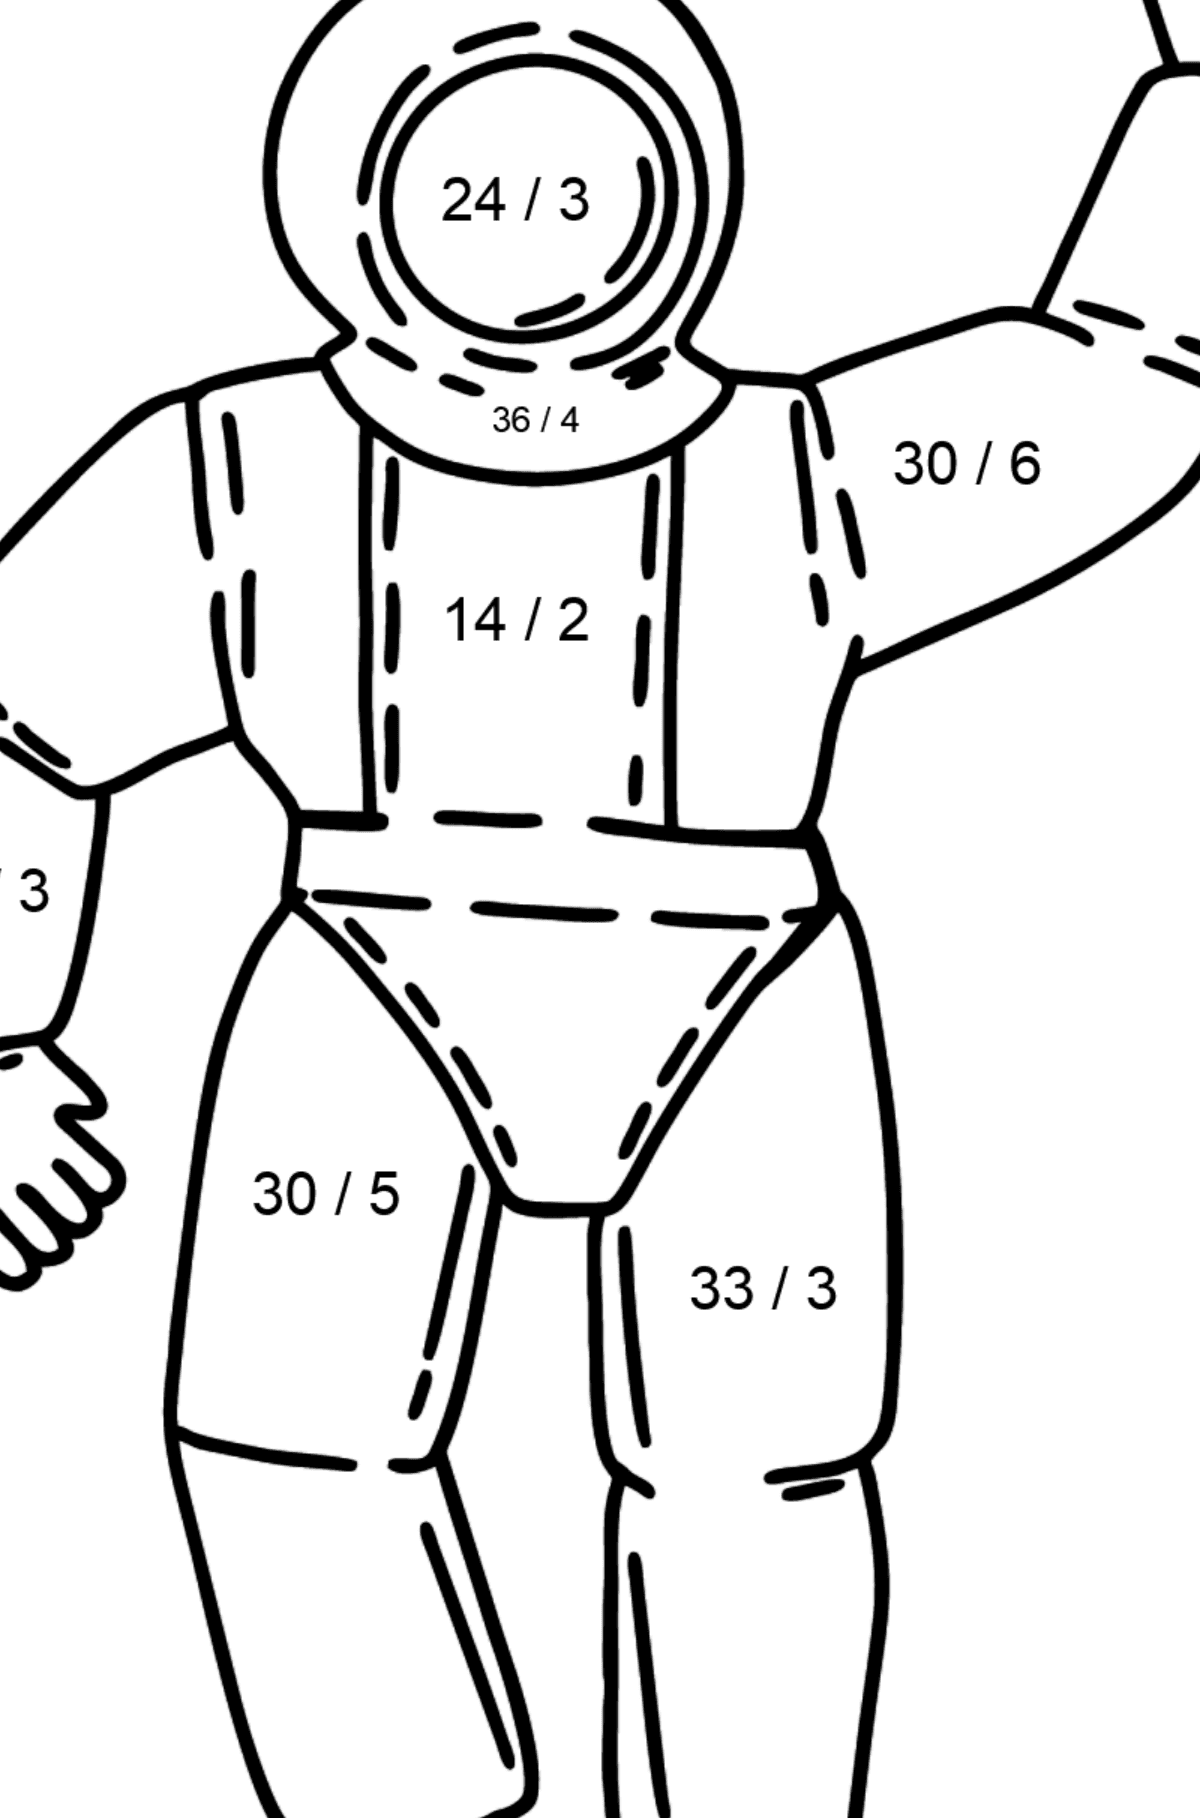 Astronaut coloring page - Math Coloring - Division for Kids